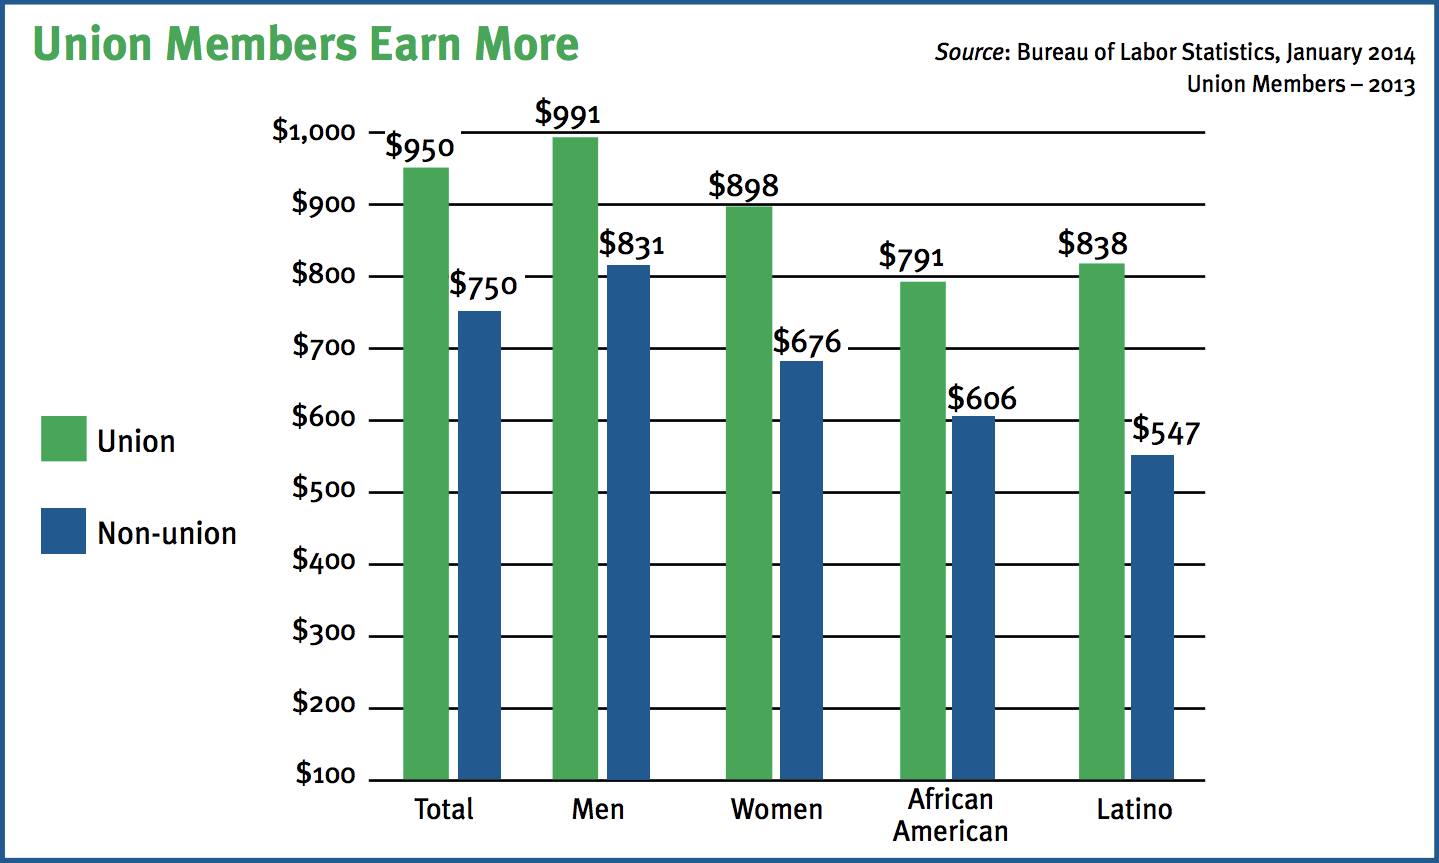 Workers who are union members earn 26.7 percent more than non-union workers.